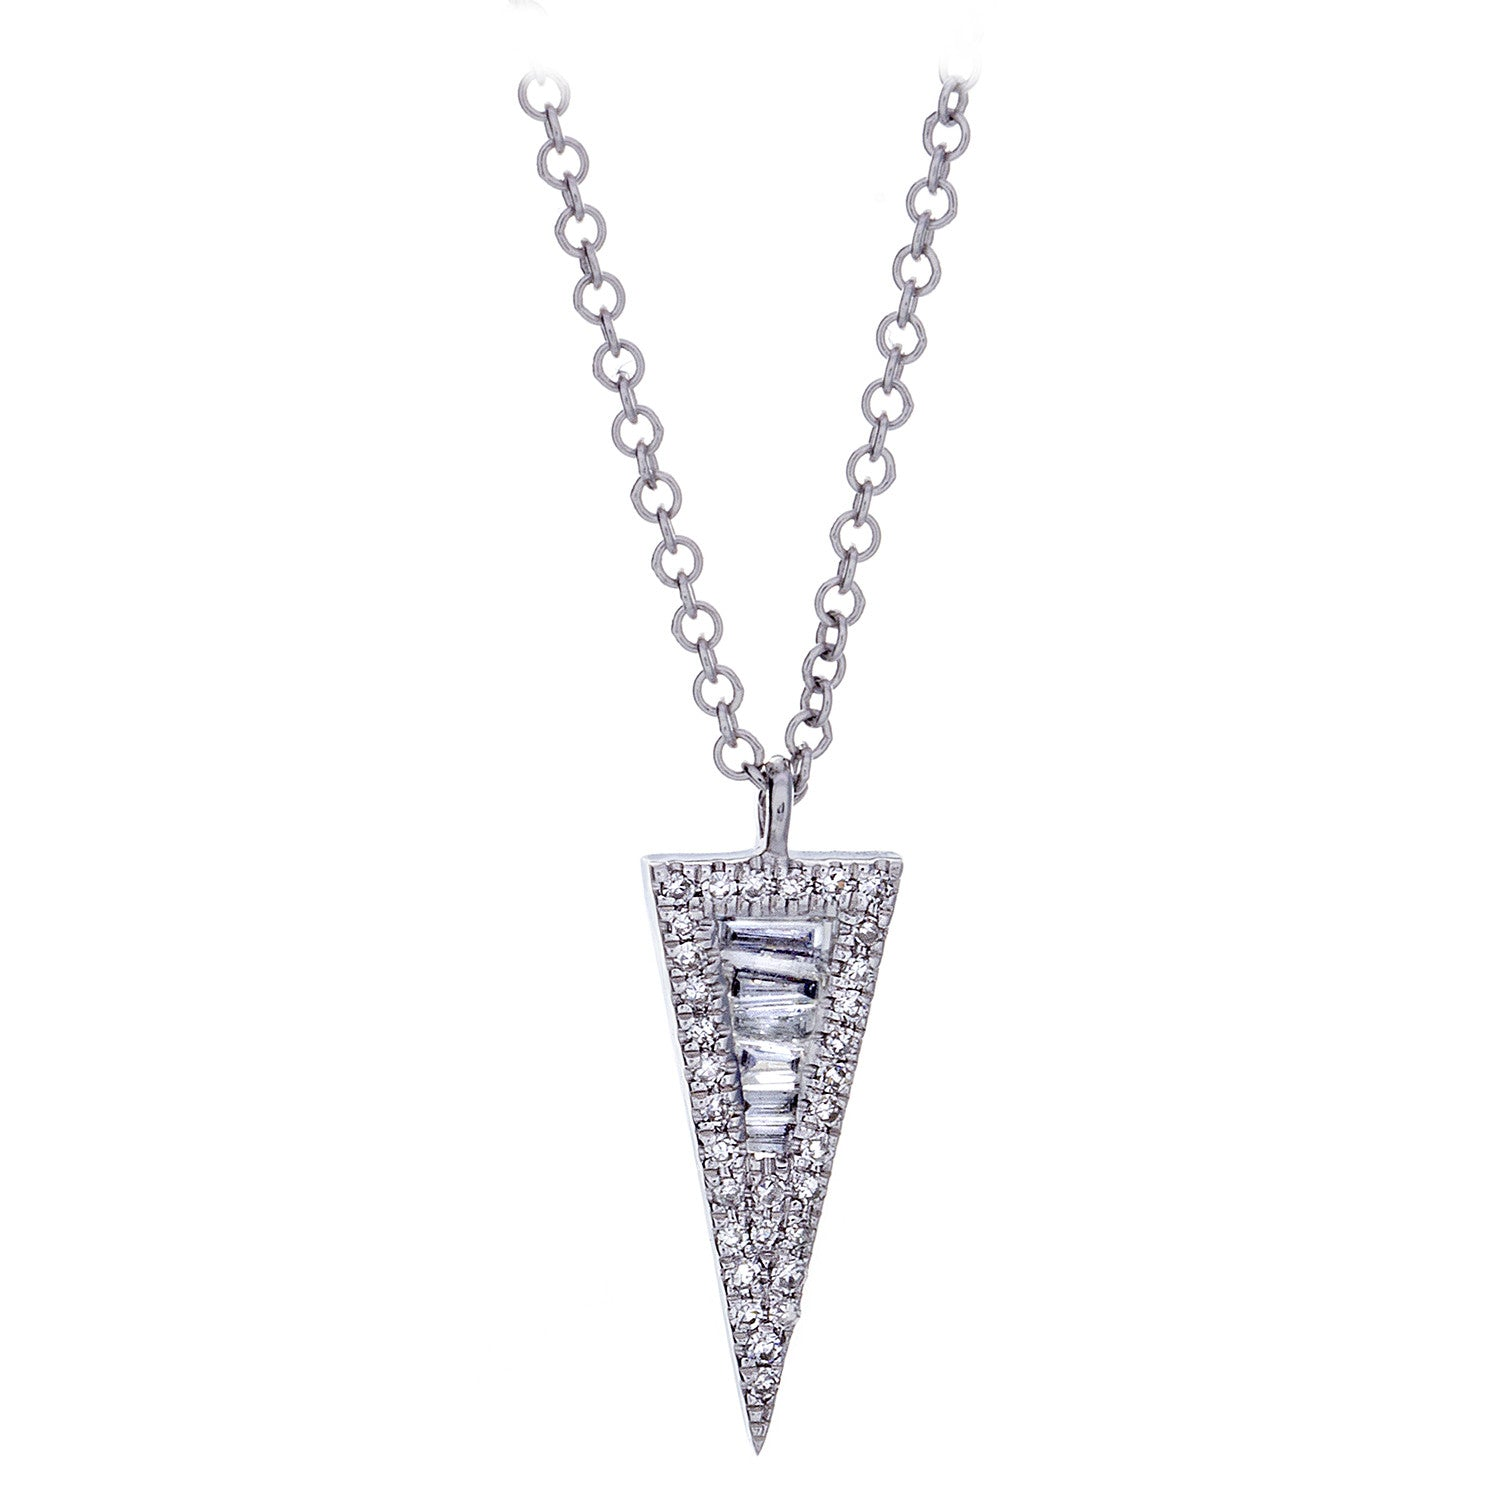 Diamond Spike Pendant & Chain in White Gold - SOLD/CAN BE SPECIAL ORDERED WITH 4-6 WEEKS DELIVERY TIME FRAME